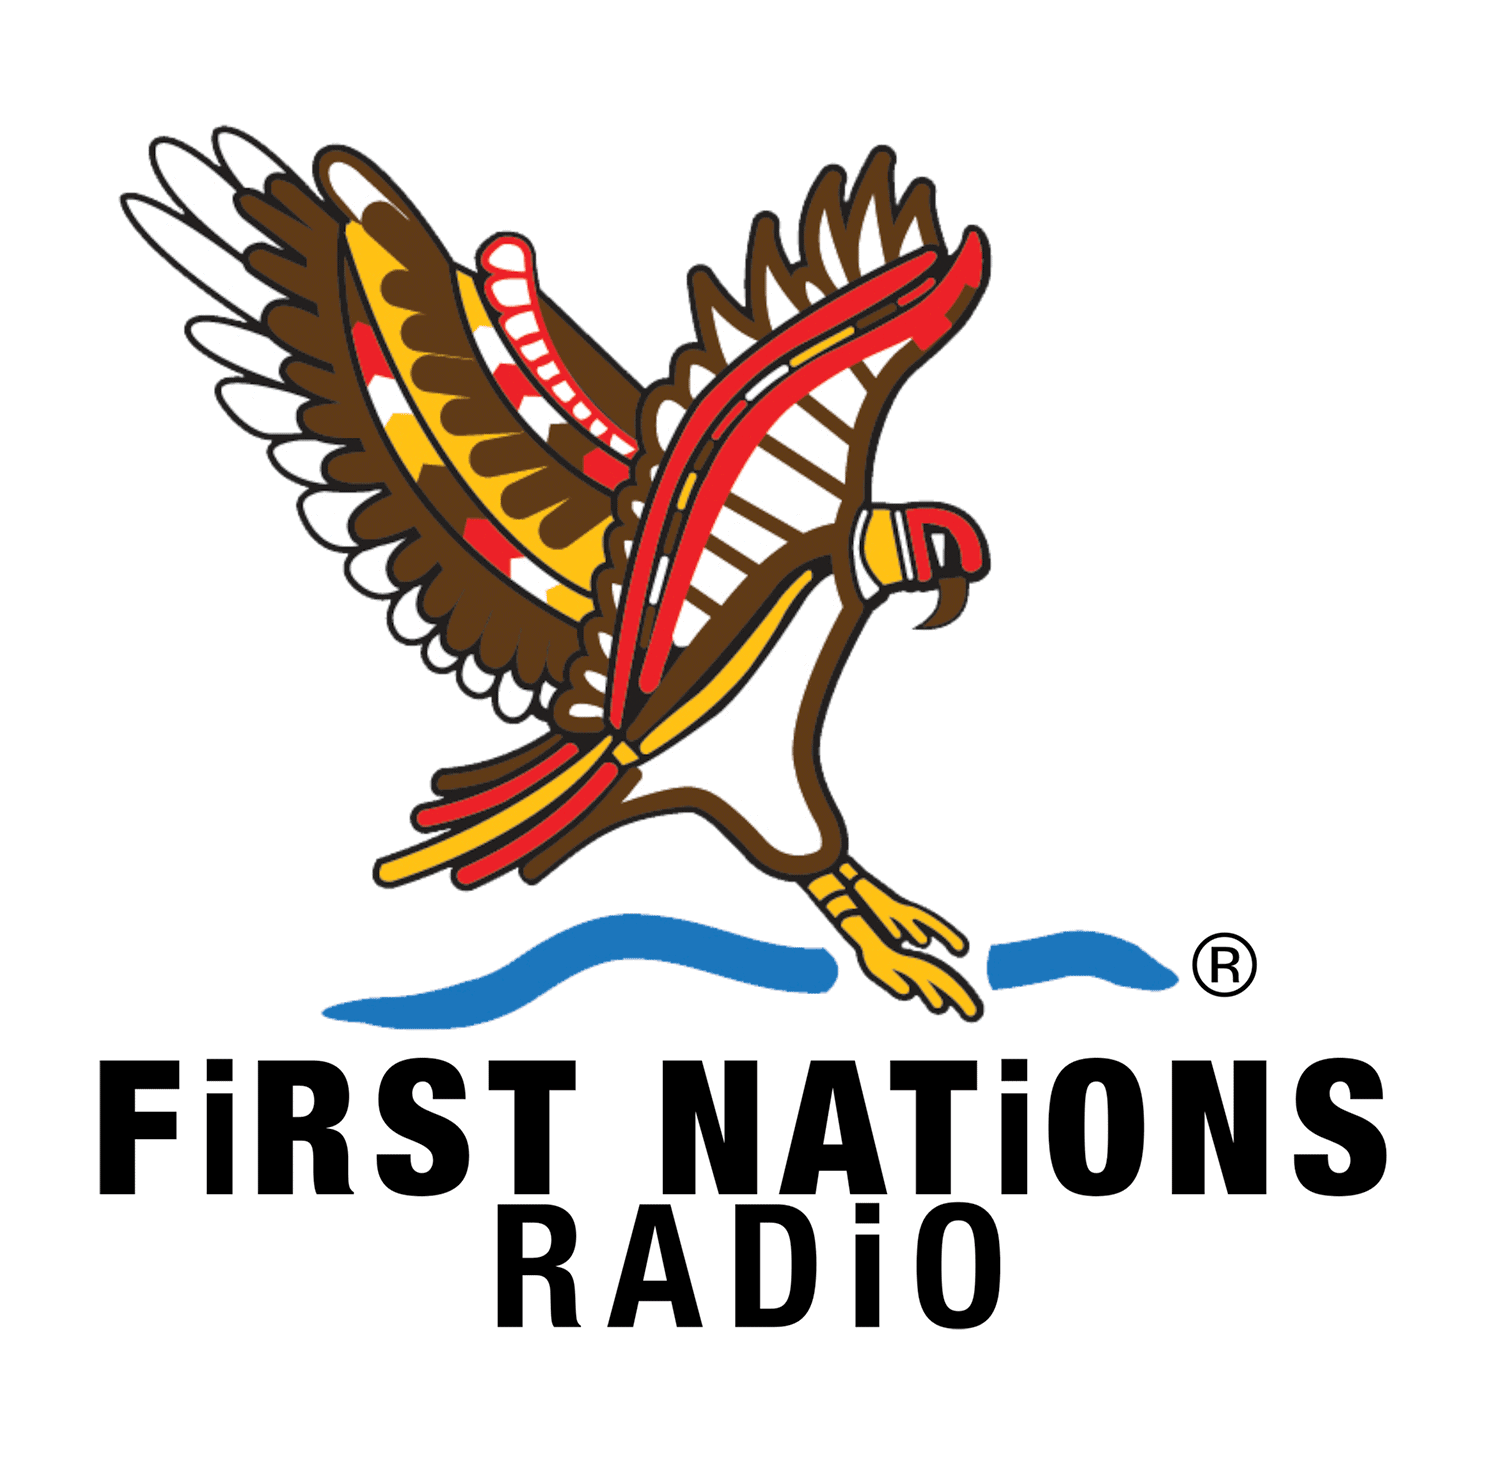 First Nations Radio